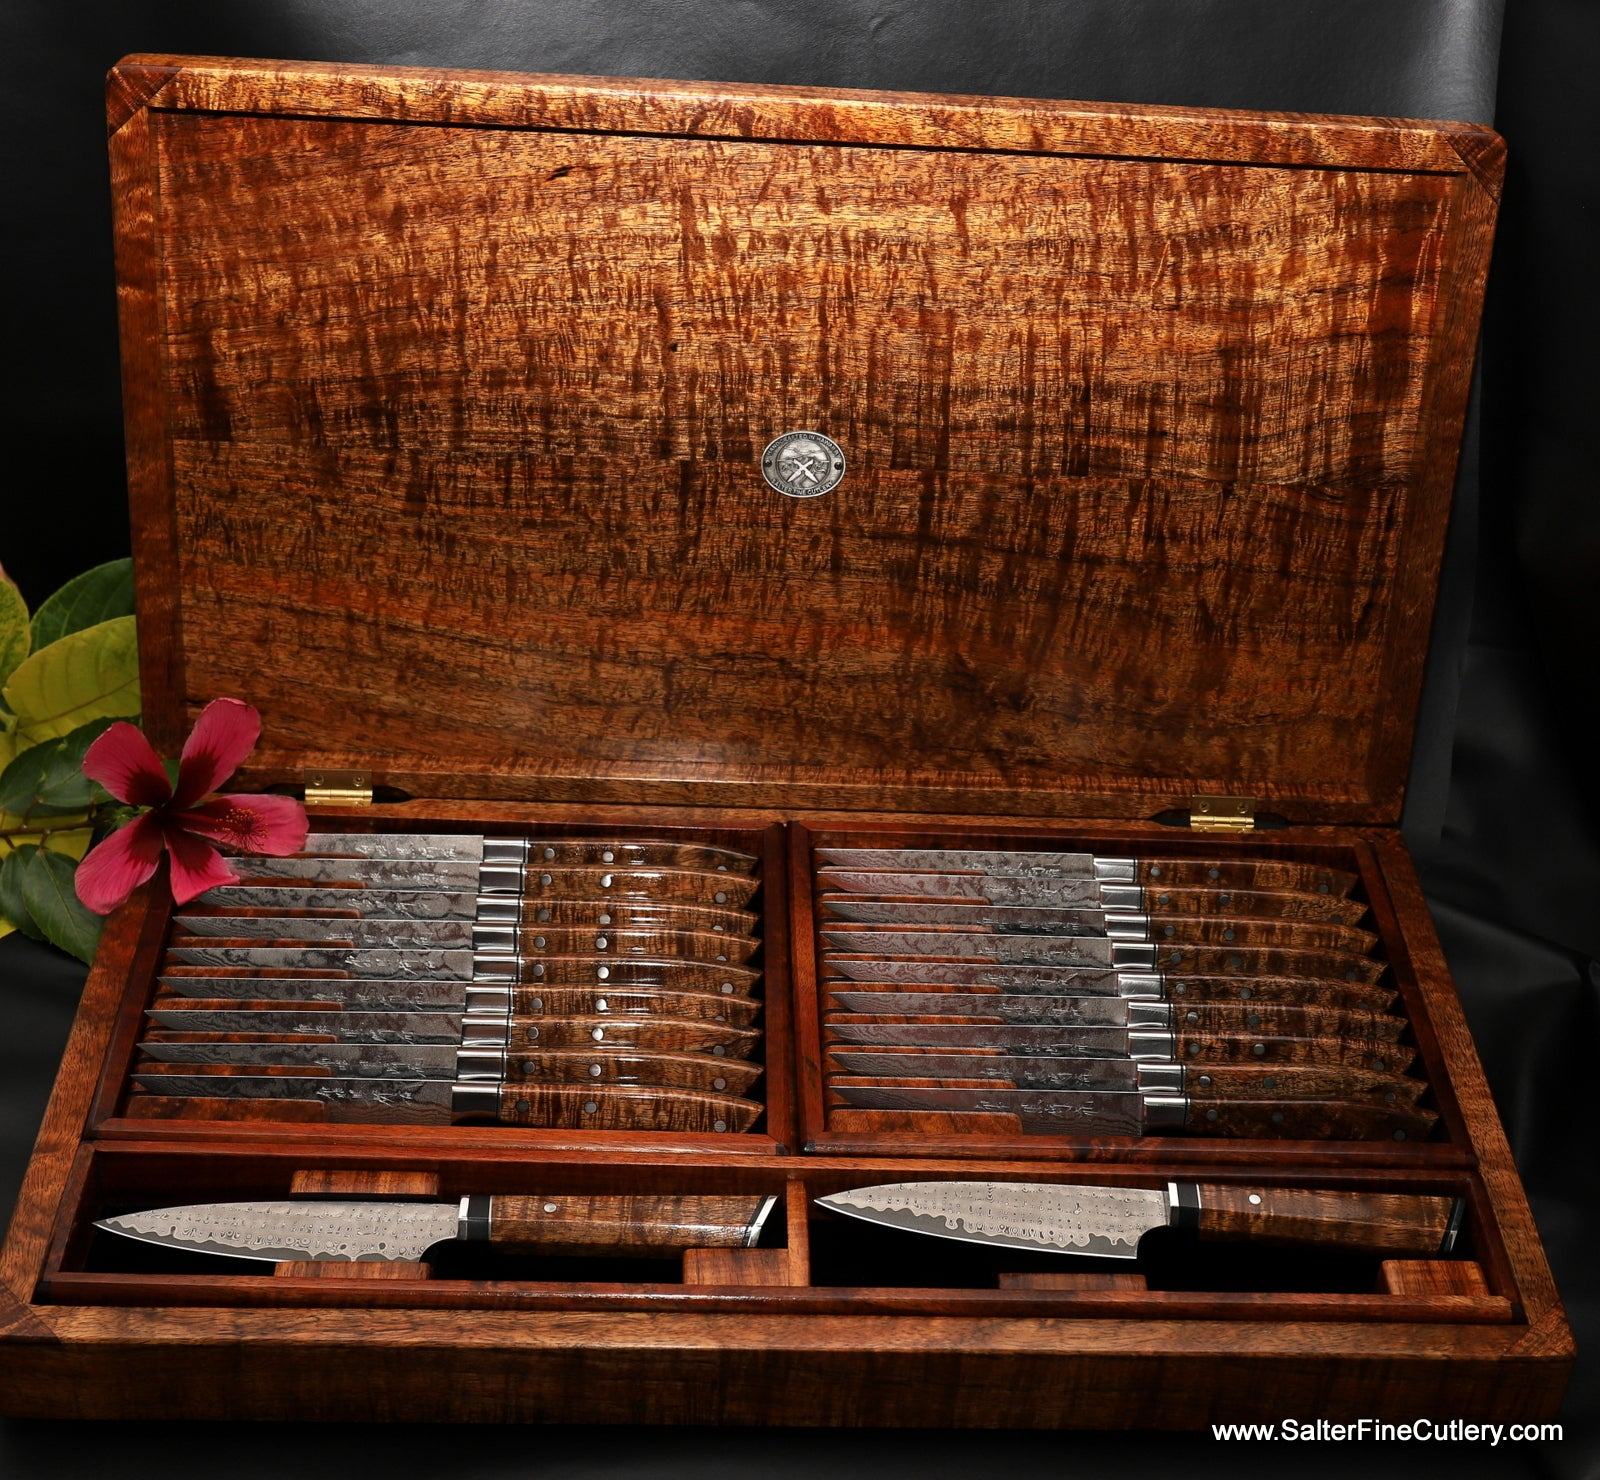 20-piece steak knife set including 2 personal cattleman's style steak knives in gorgeous curly Hawaiian premium upgrade koa wood presentation box handcrafted by Gregg Salter of Salter Fine Cutlery in Hawaii